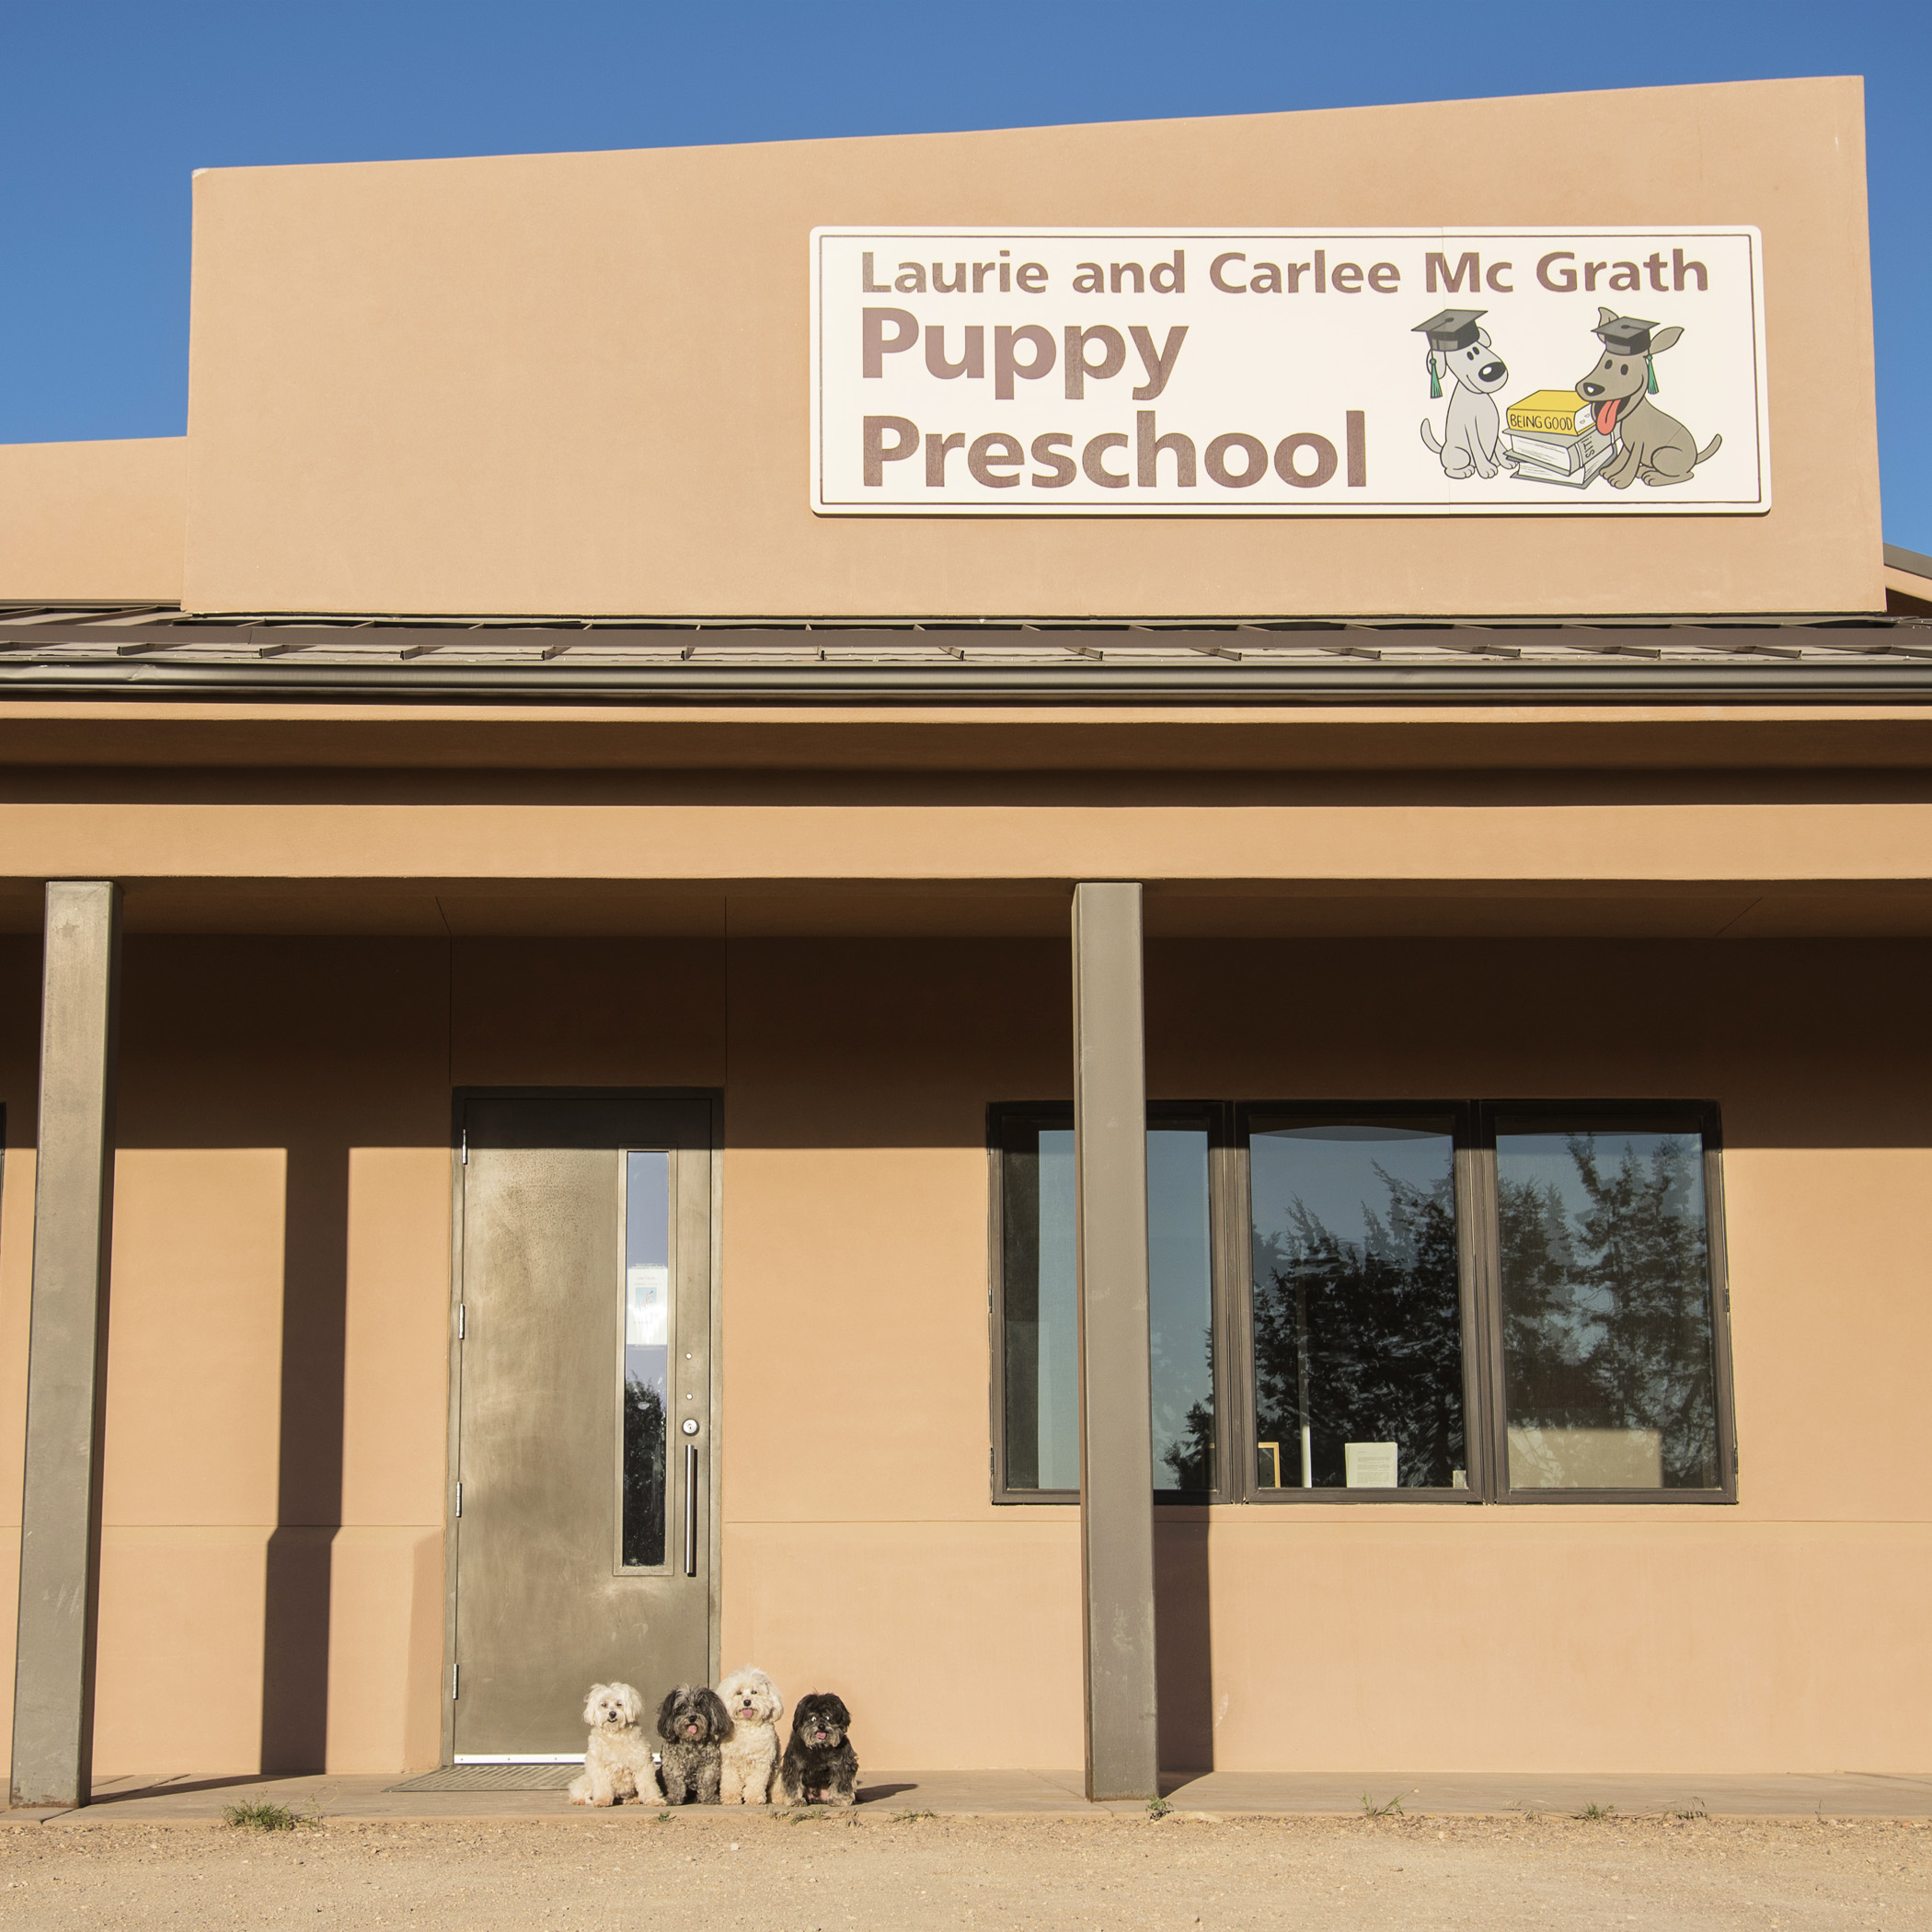 Not surprisingly, Mommy was first in line to volunteer for Puppies! Ah, geez, Mom…don't get any silly ideas!!